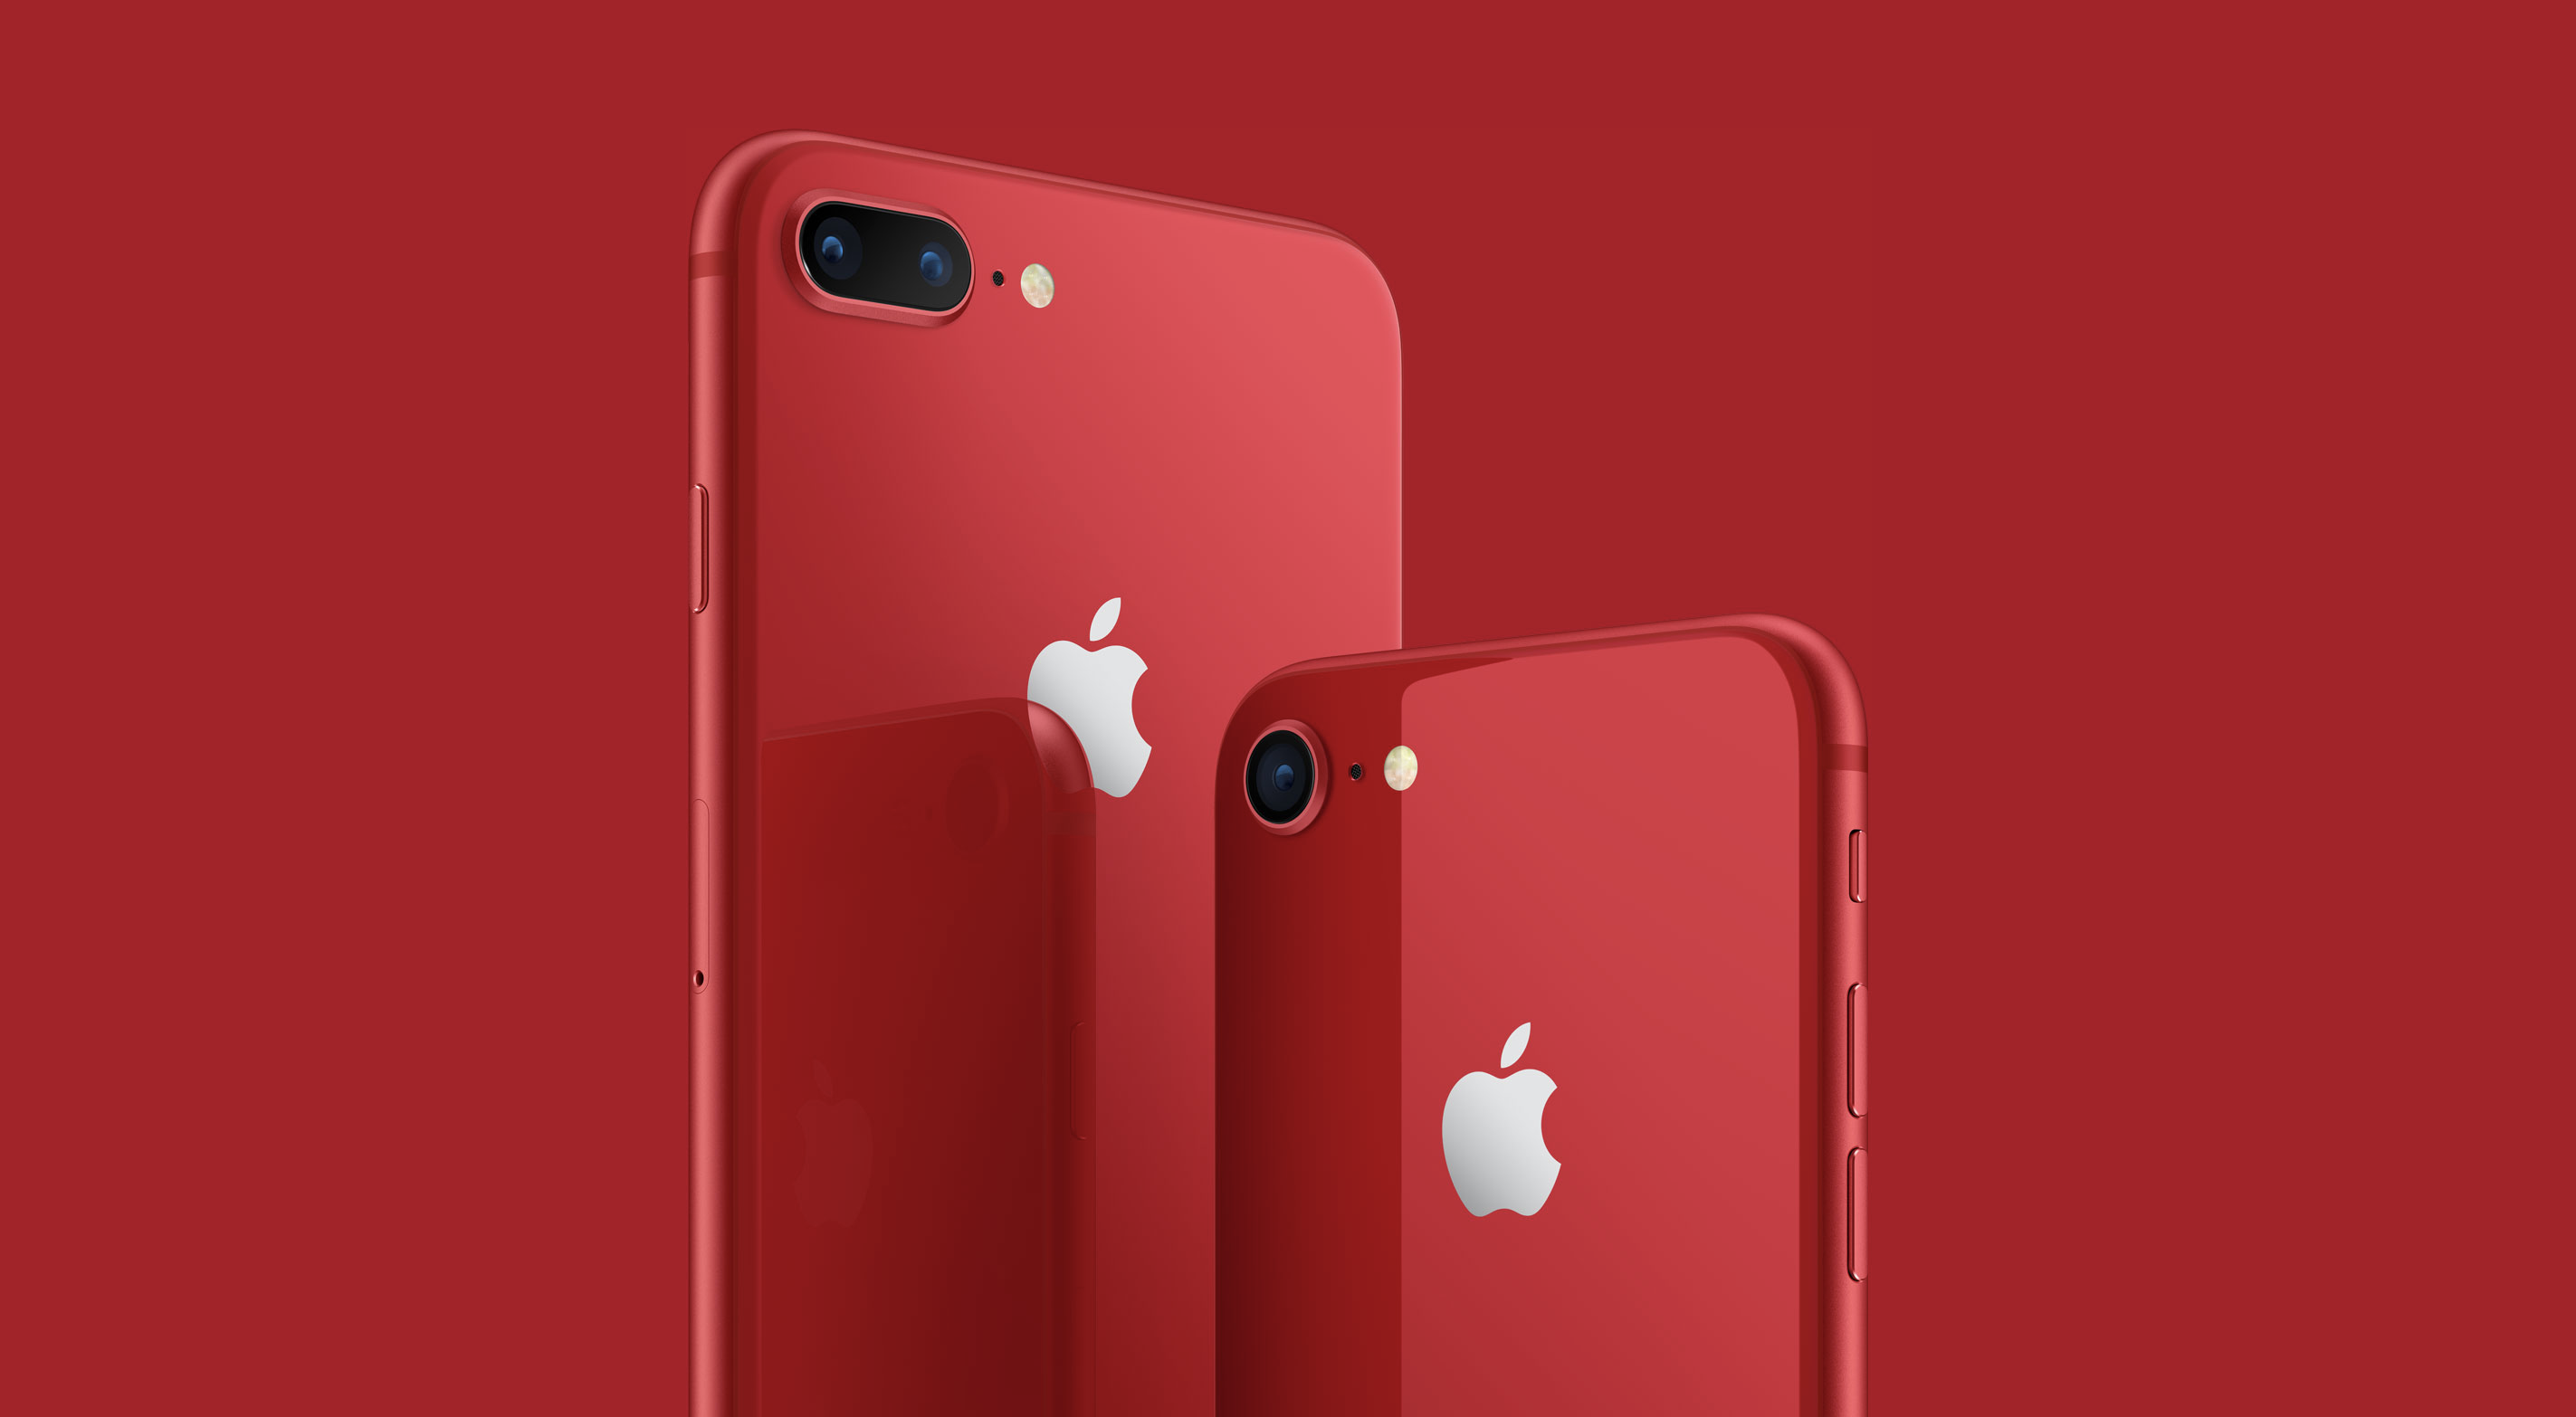 iPhone 8 Plus Red - iPhone 8 Red